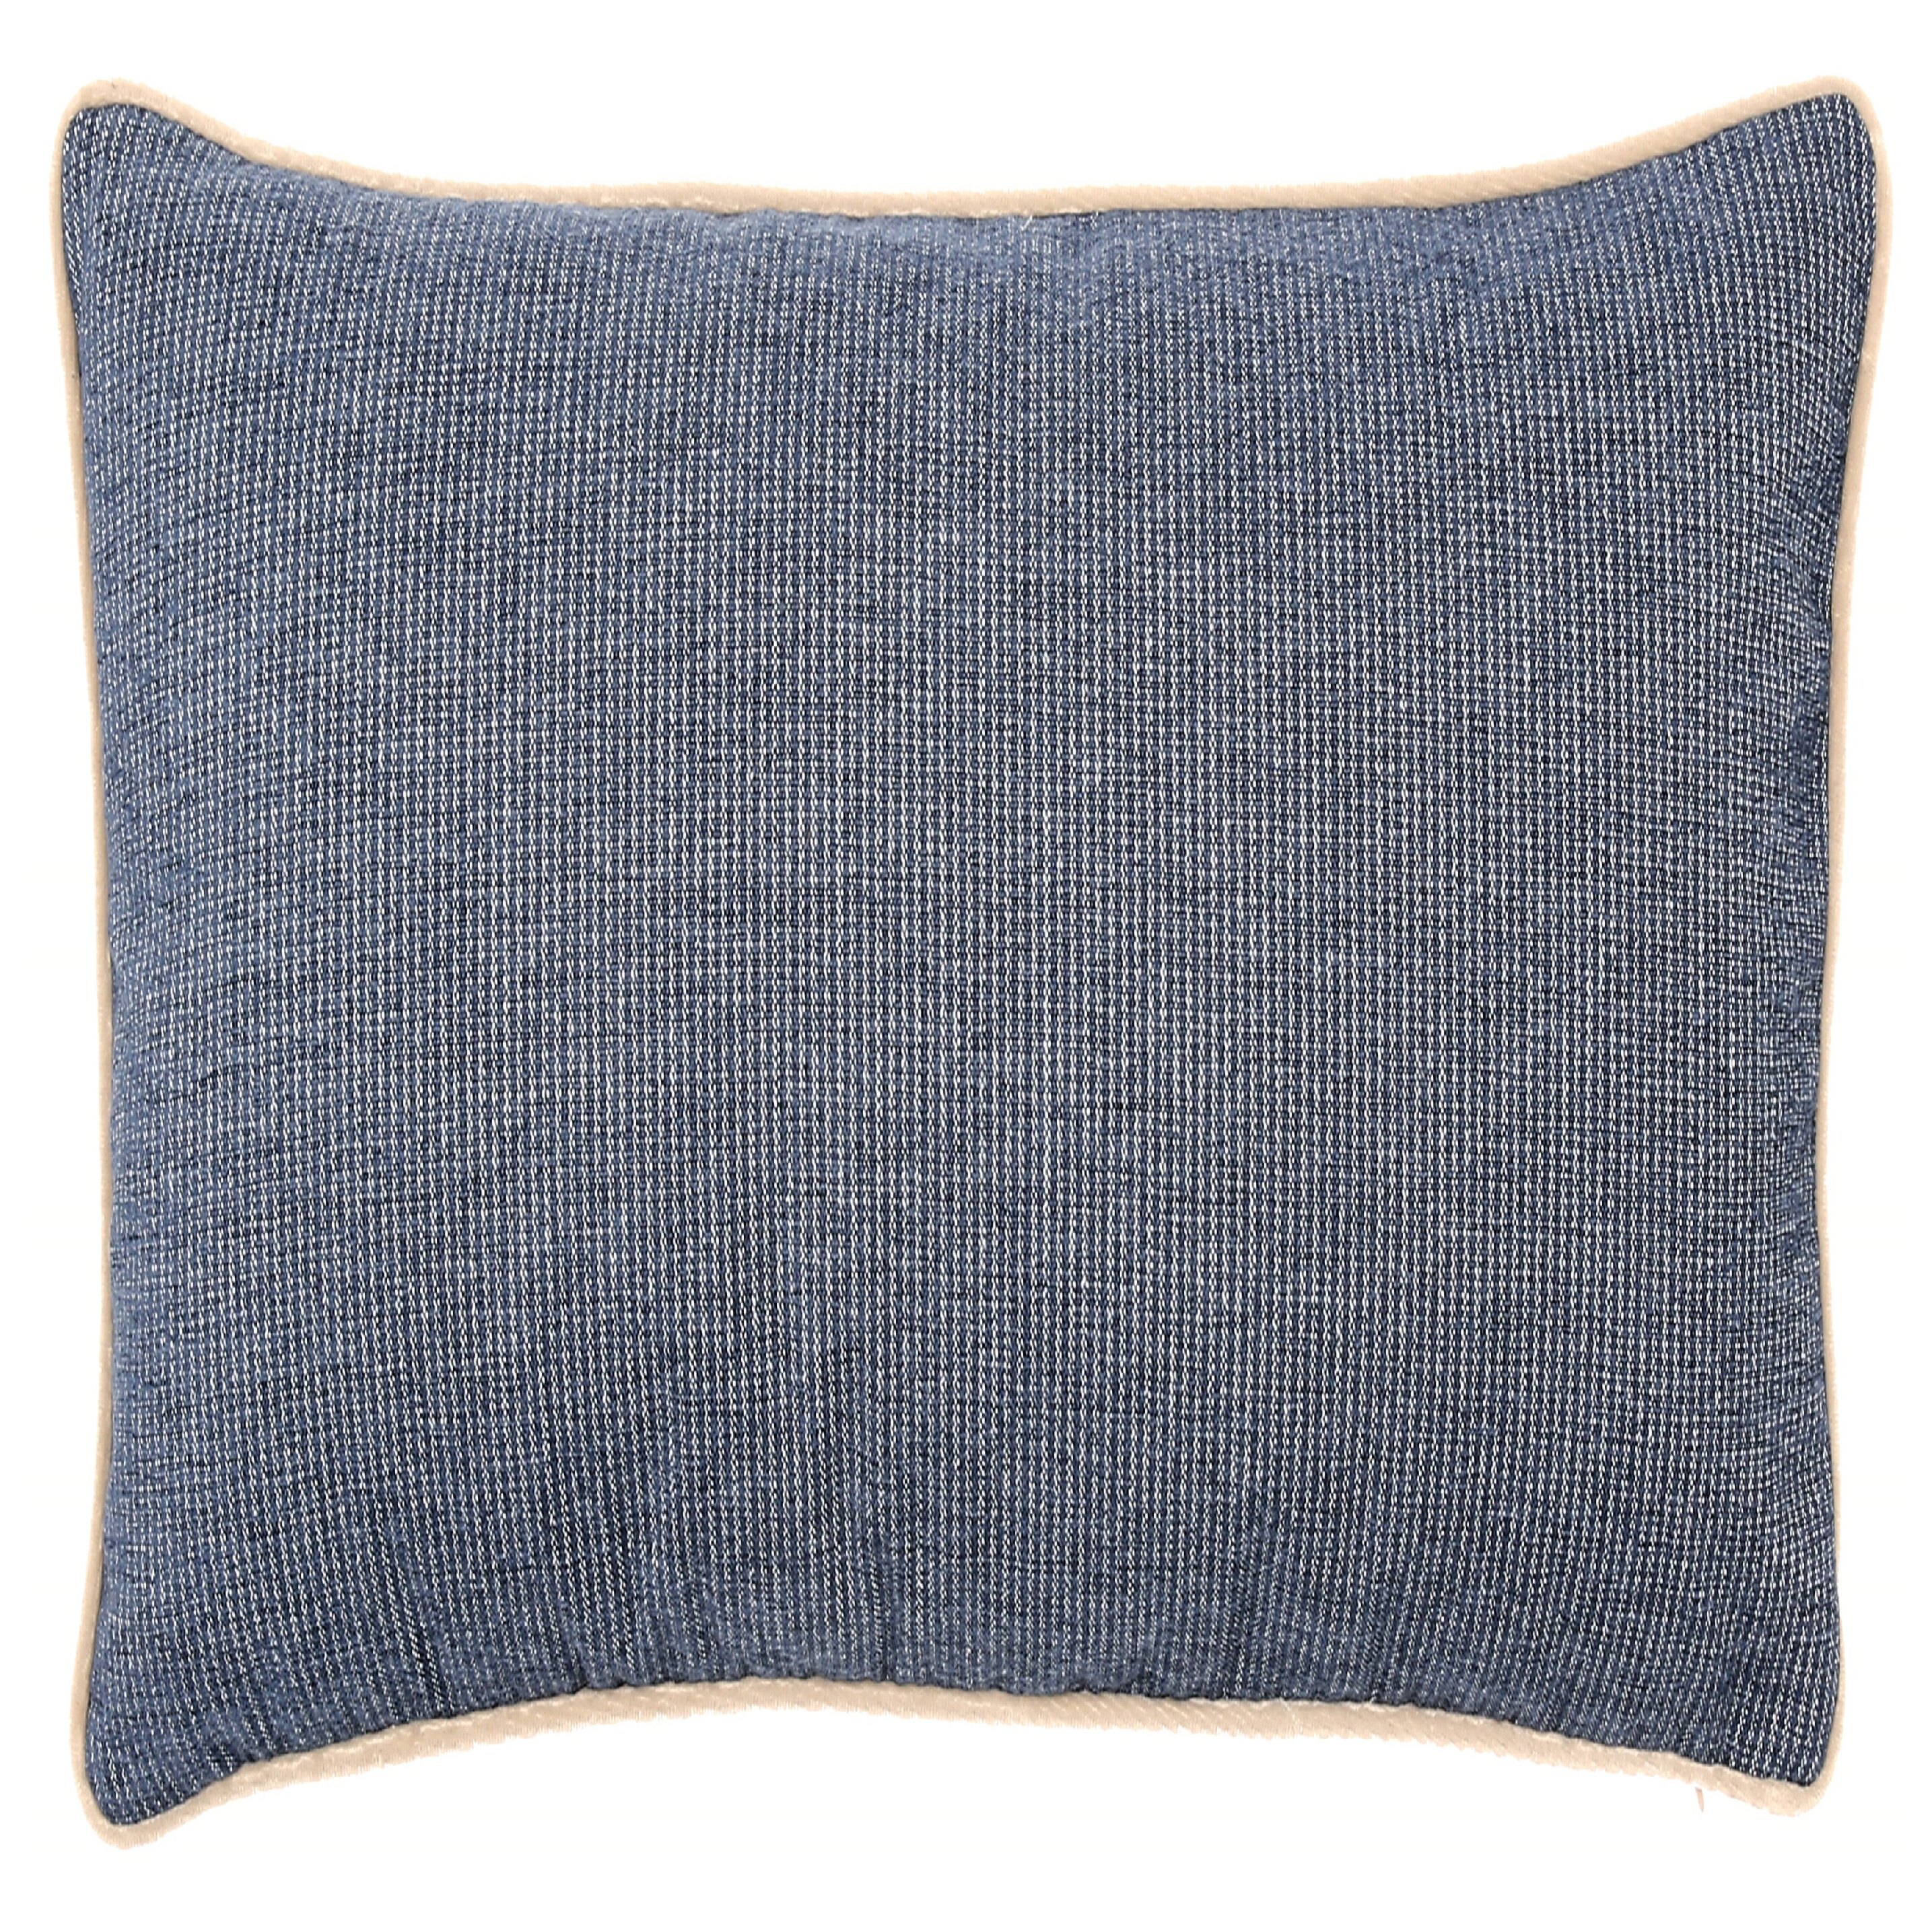 The Pillow Collection Ailsa Stripes Pillow Gold